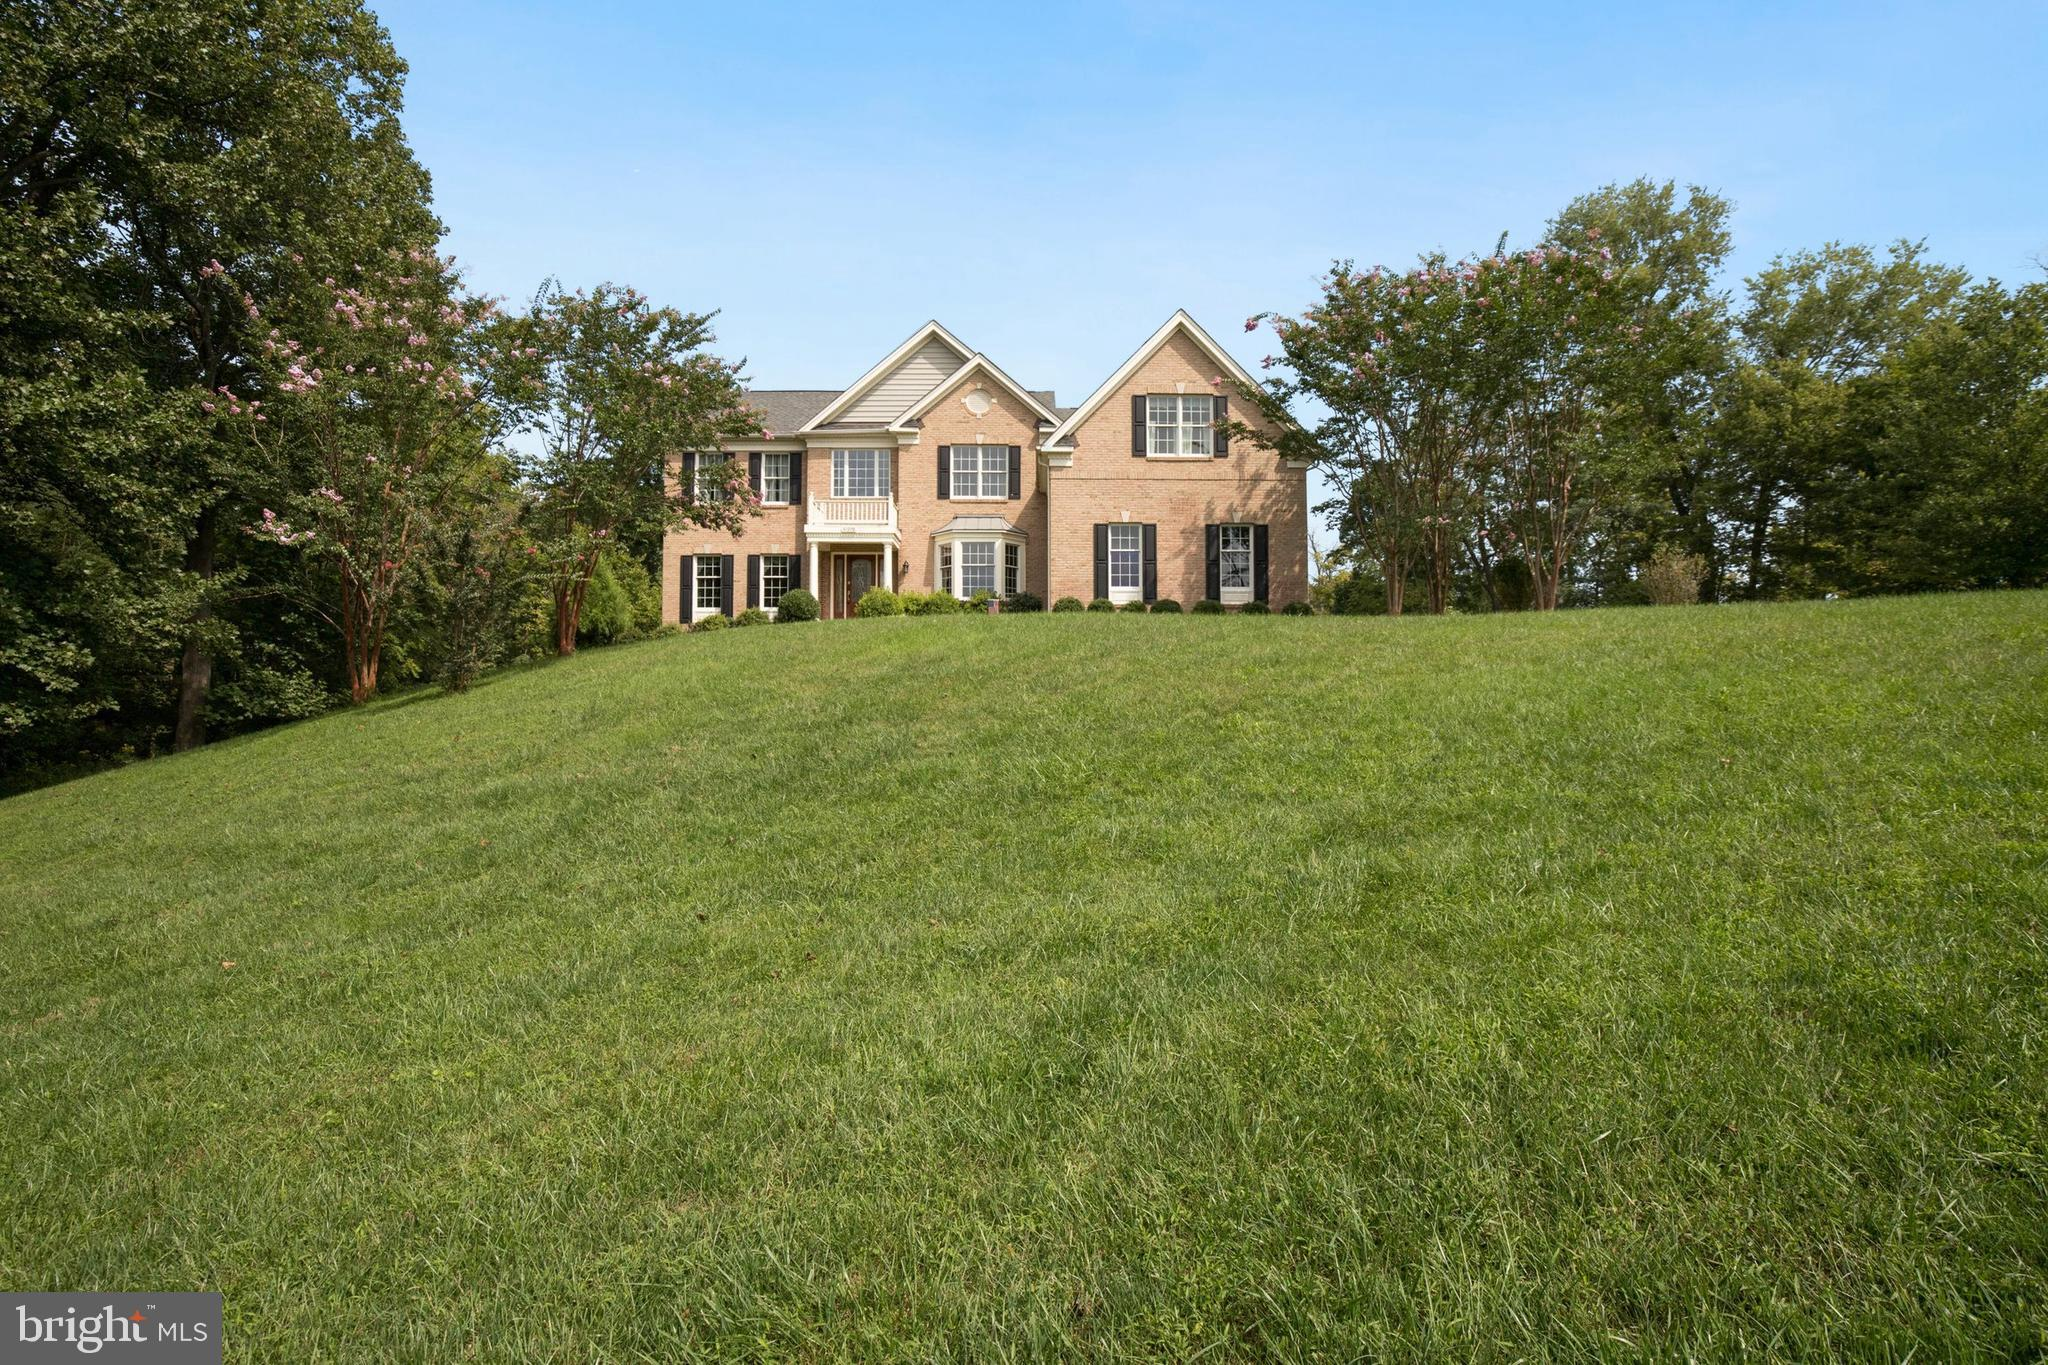 Stunning Toll Brothers Langley model estate situated on an incredible 3 and a half acre lot surround